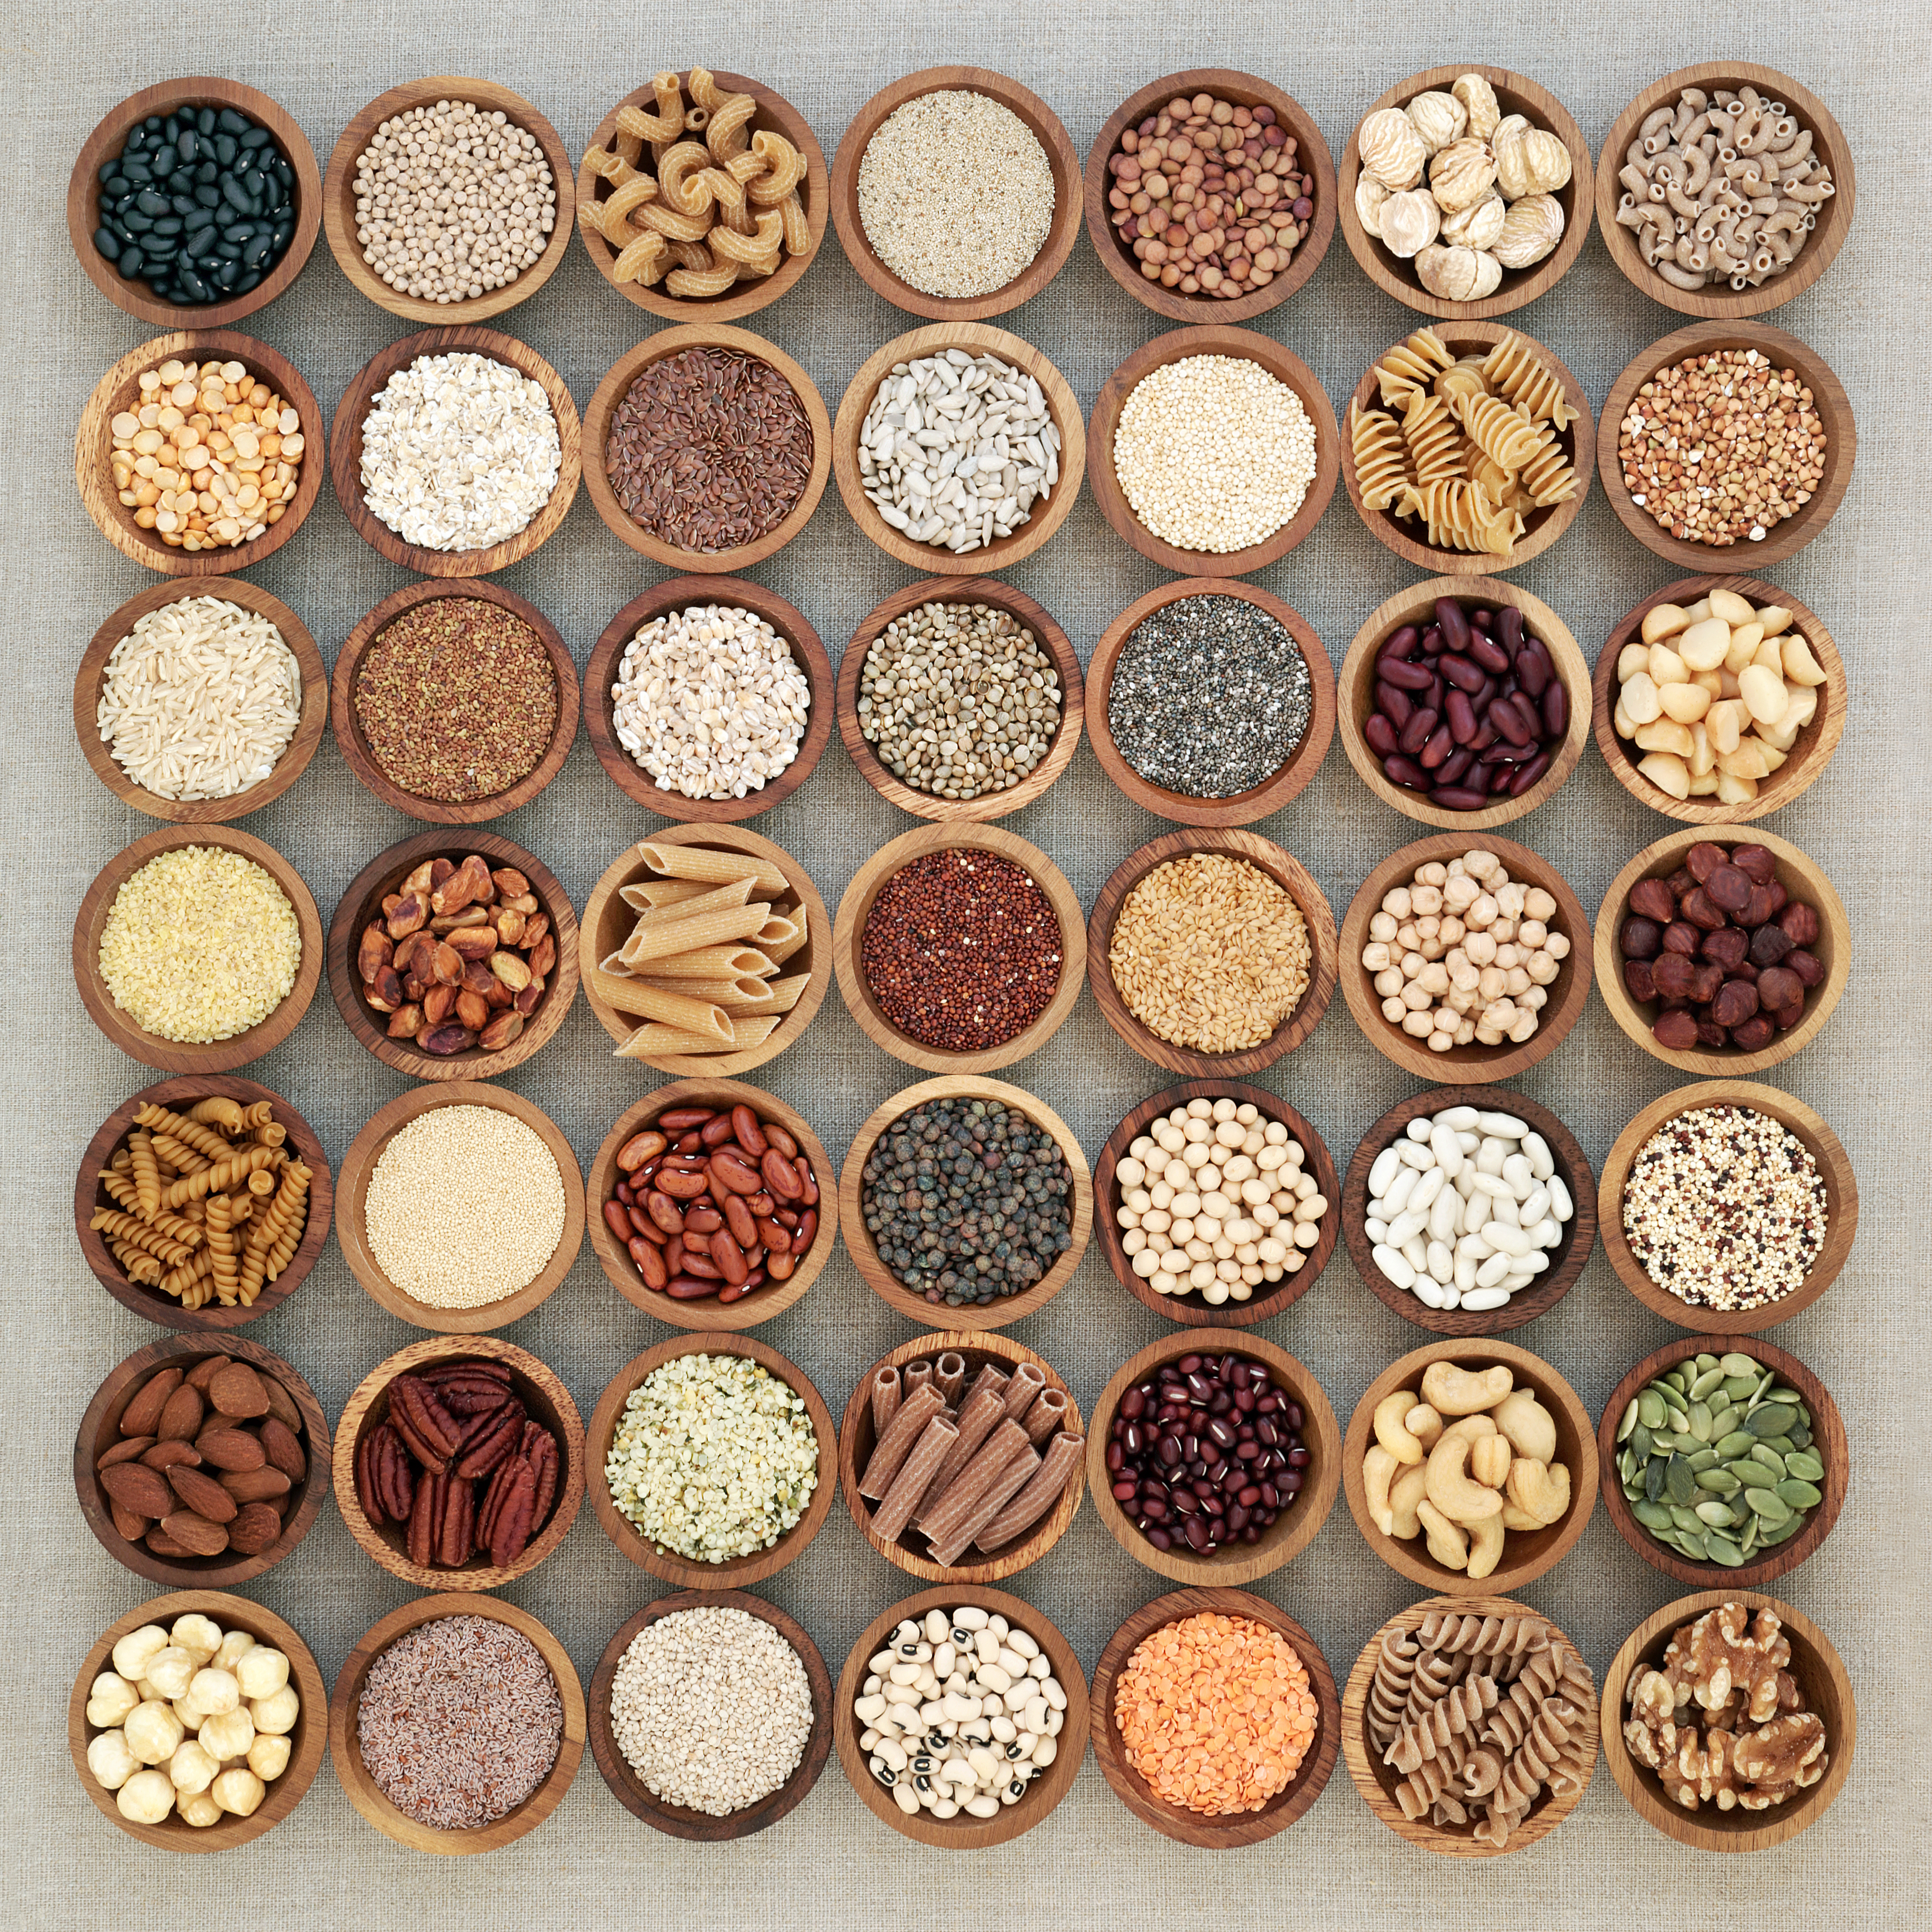 Vegan high protein dried health food collection with nuts, seeds, legumes, whole wheat pasta, grains and cereals. Foods high in fibre, antioxidants, anthocyanins, vitamins and minerals. Top view on hessian background.